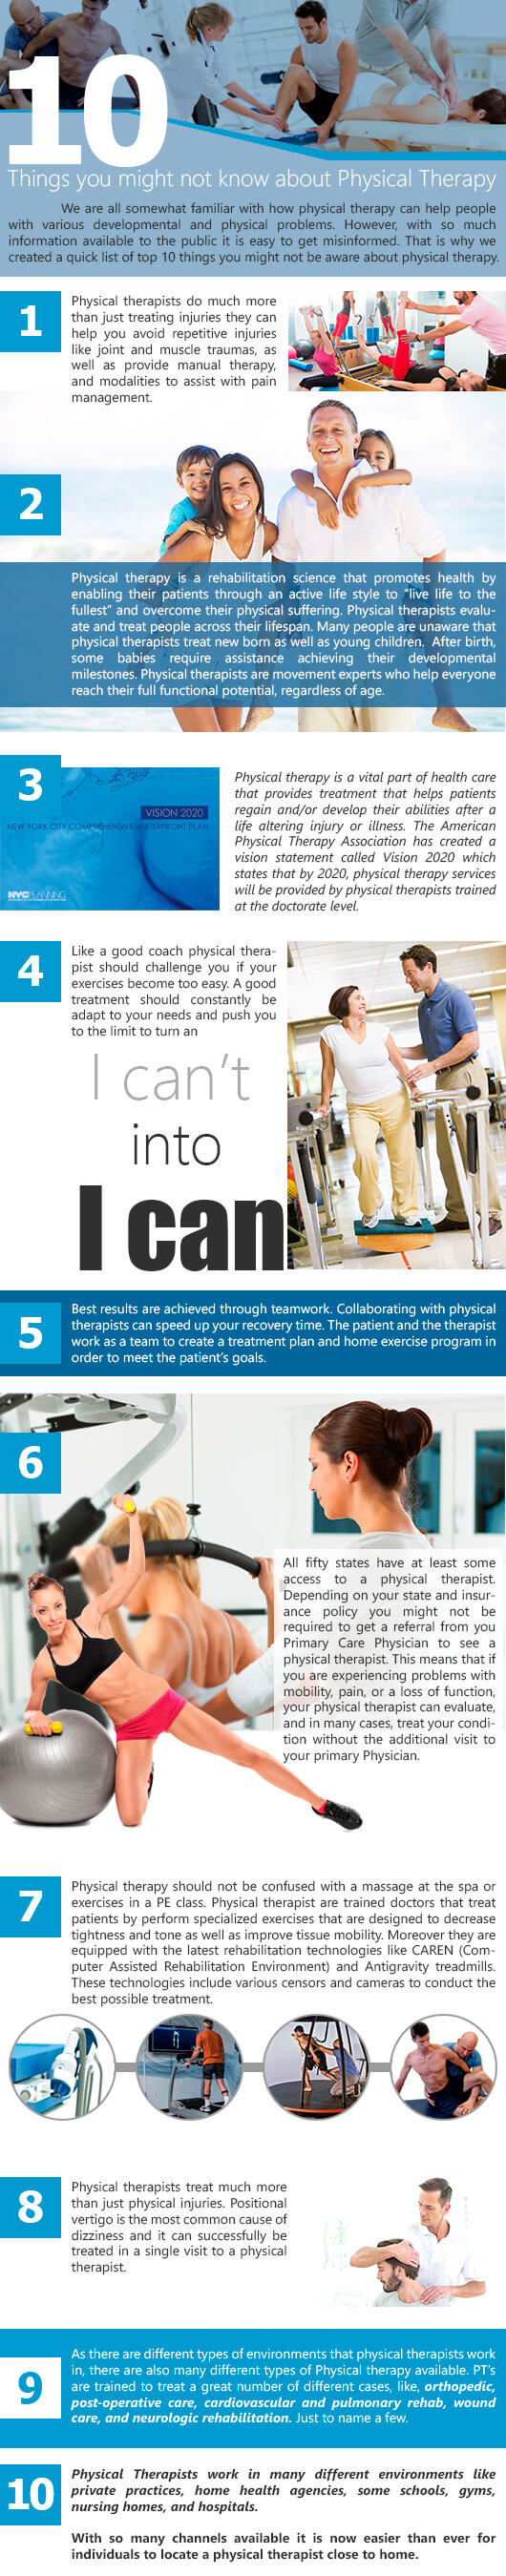 10 Things you Might Not Know About Physical Therapy